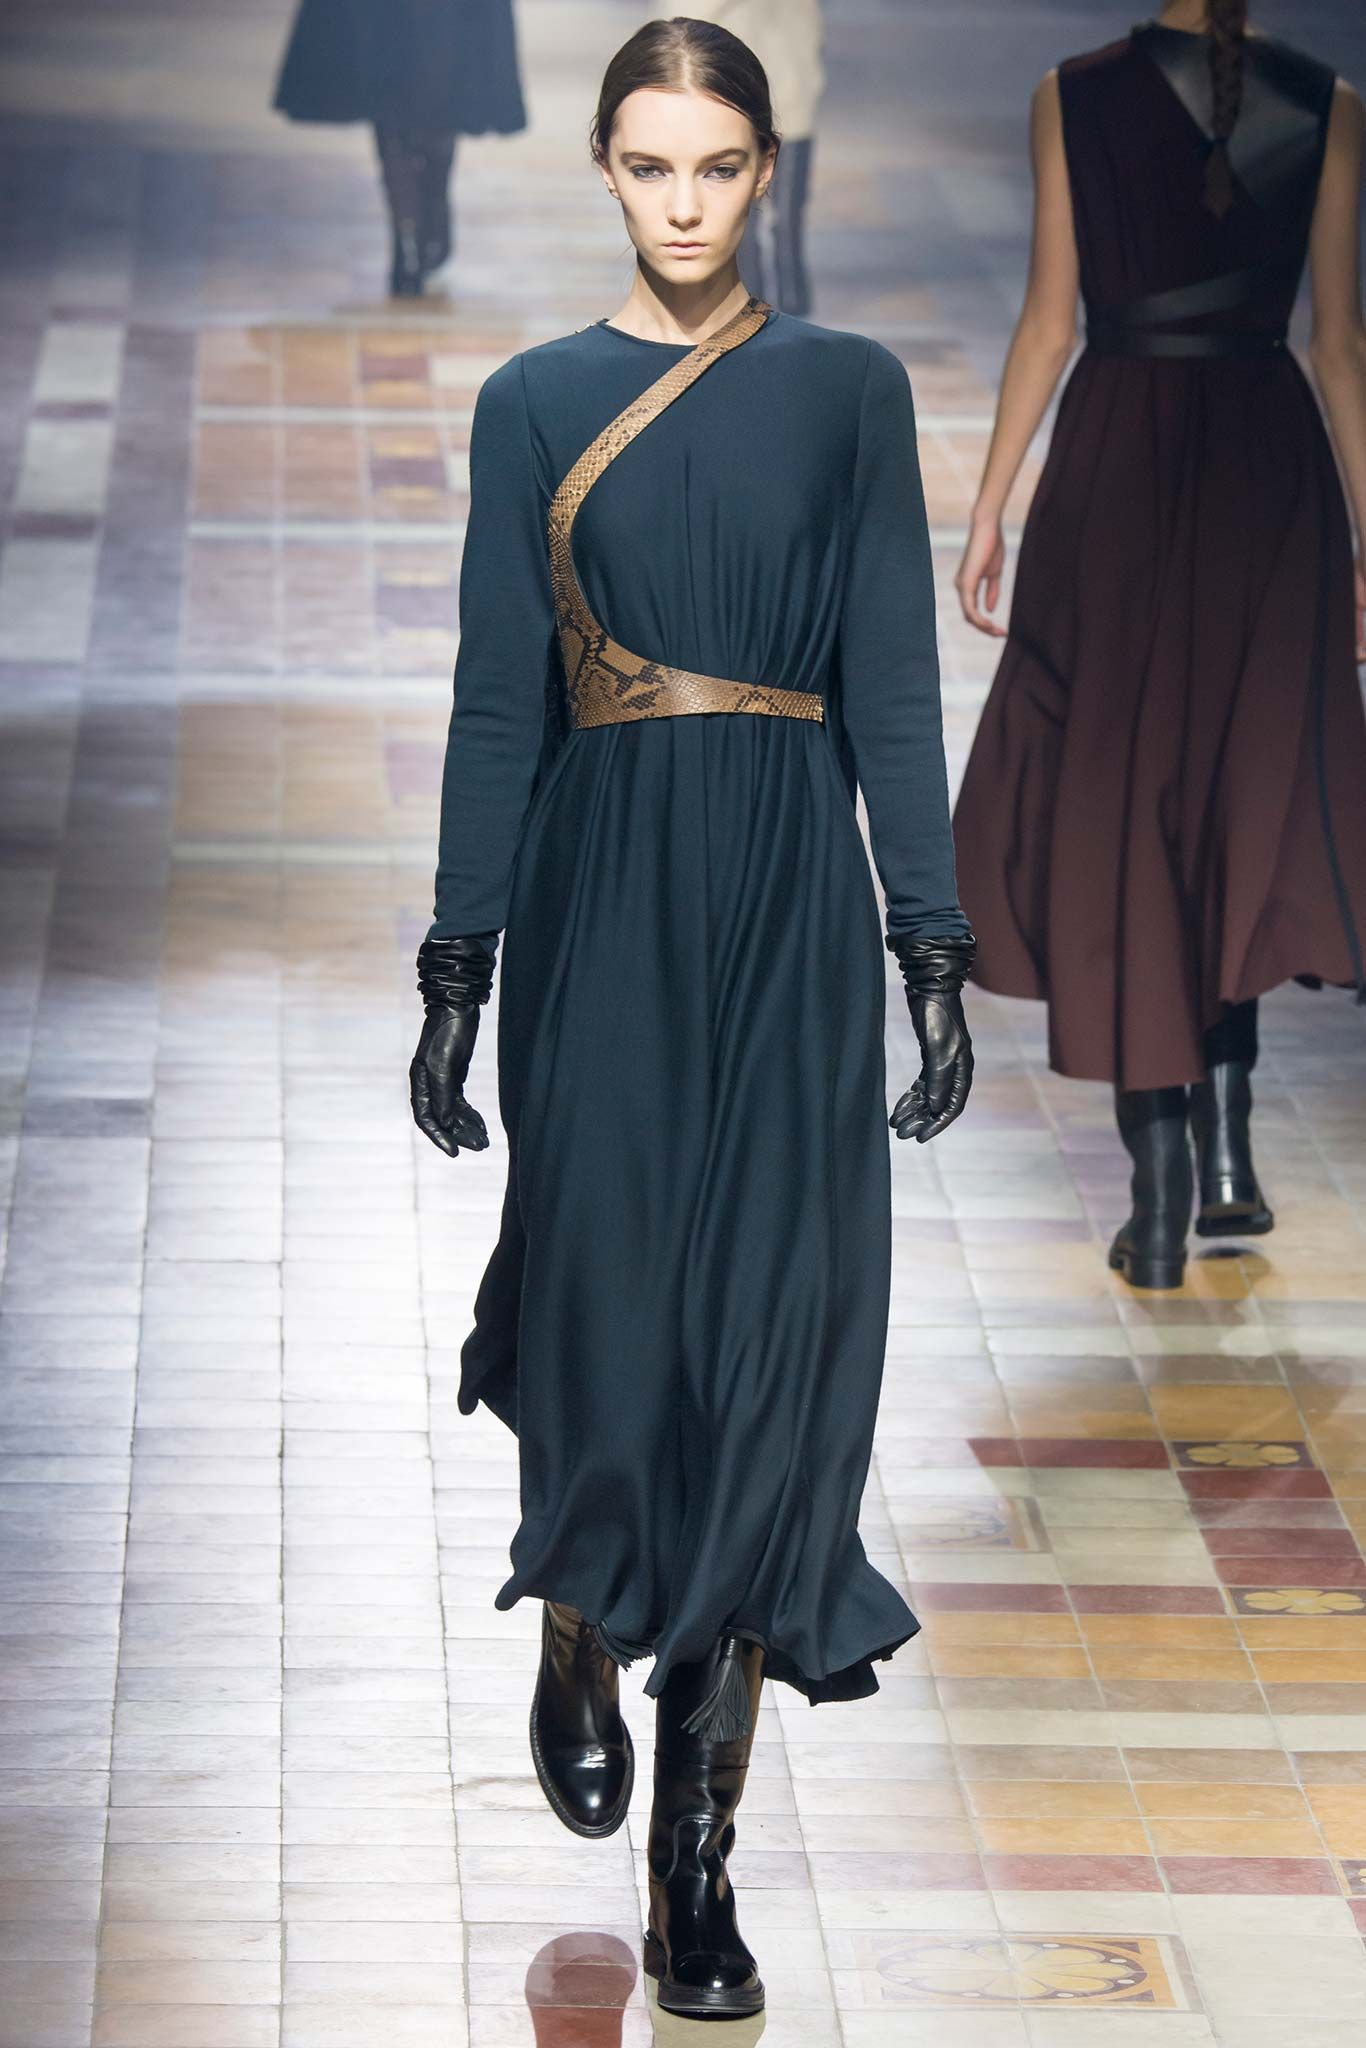 Lanvin - This collection is for the traveler someone who is worldly and also appreciate fabrics and luxury. Thestyleweaver.com Fall 2015 Ready-to-Wear